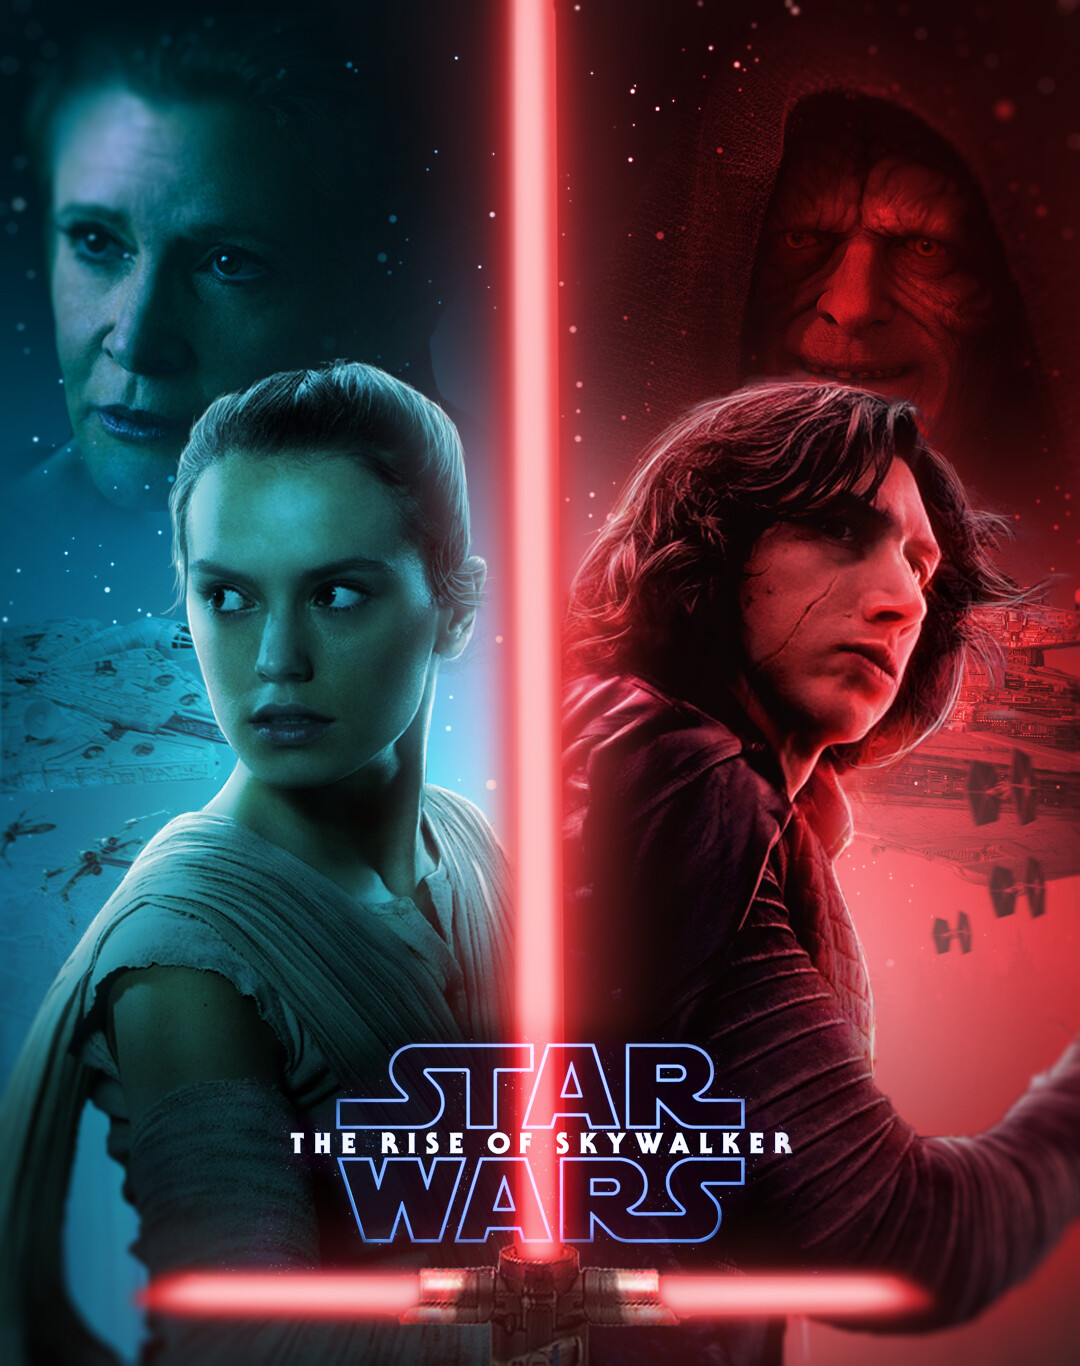 Artstation Star Wars The Rise Of Skywalker Poster Zidane Ikhwan